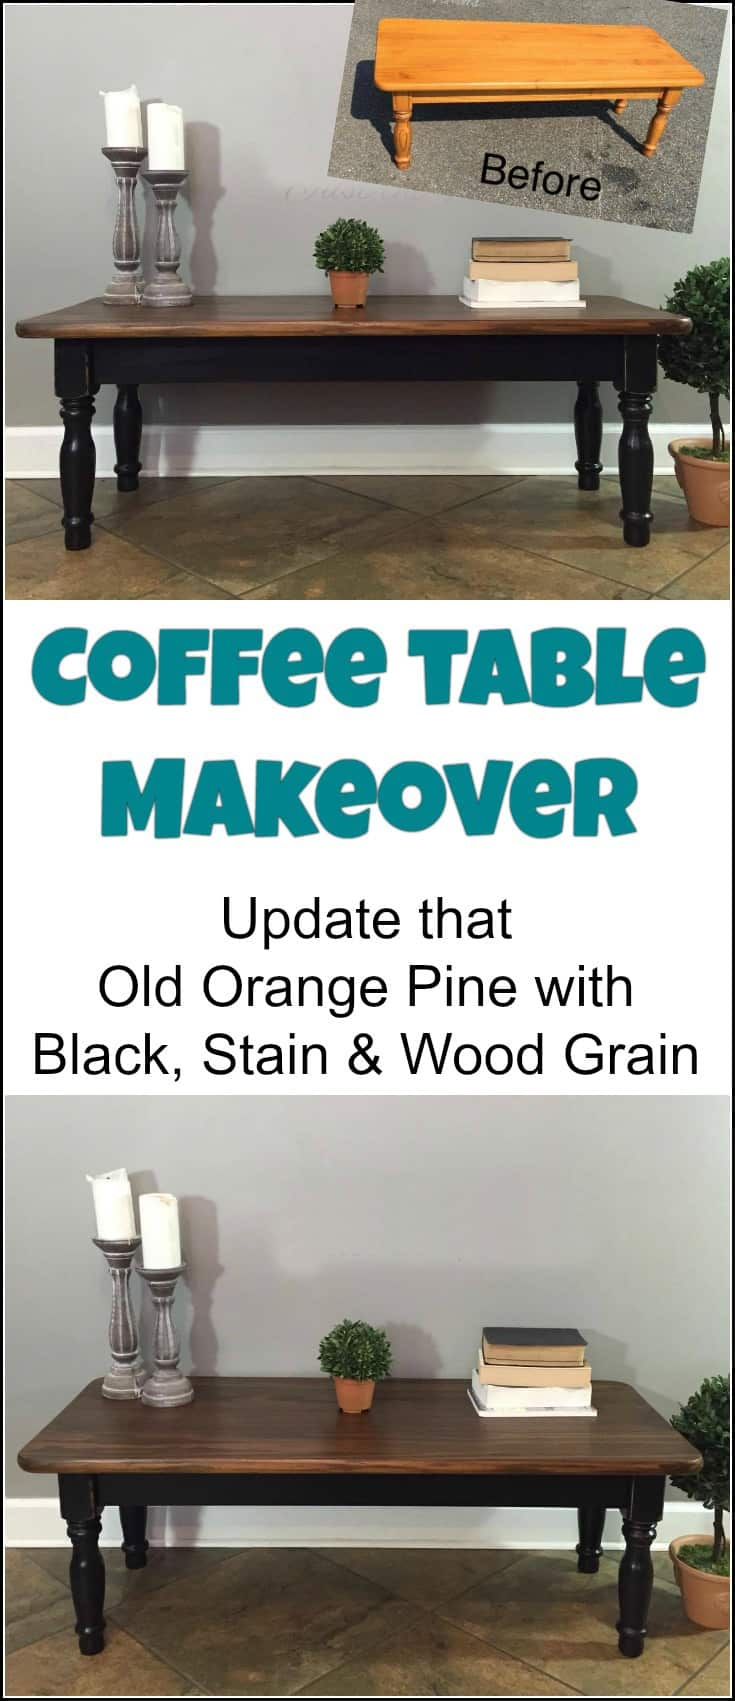 Coffee Table Makeover From Orange Pine To Black Chalk Paint With A Rich  Stain Top Gives